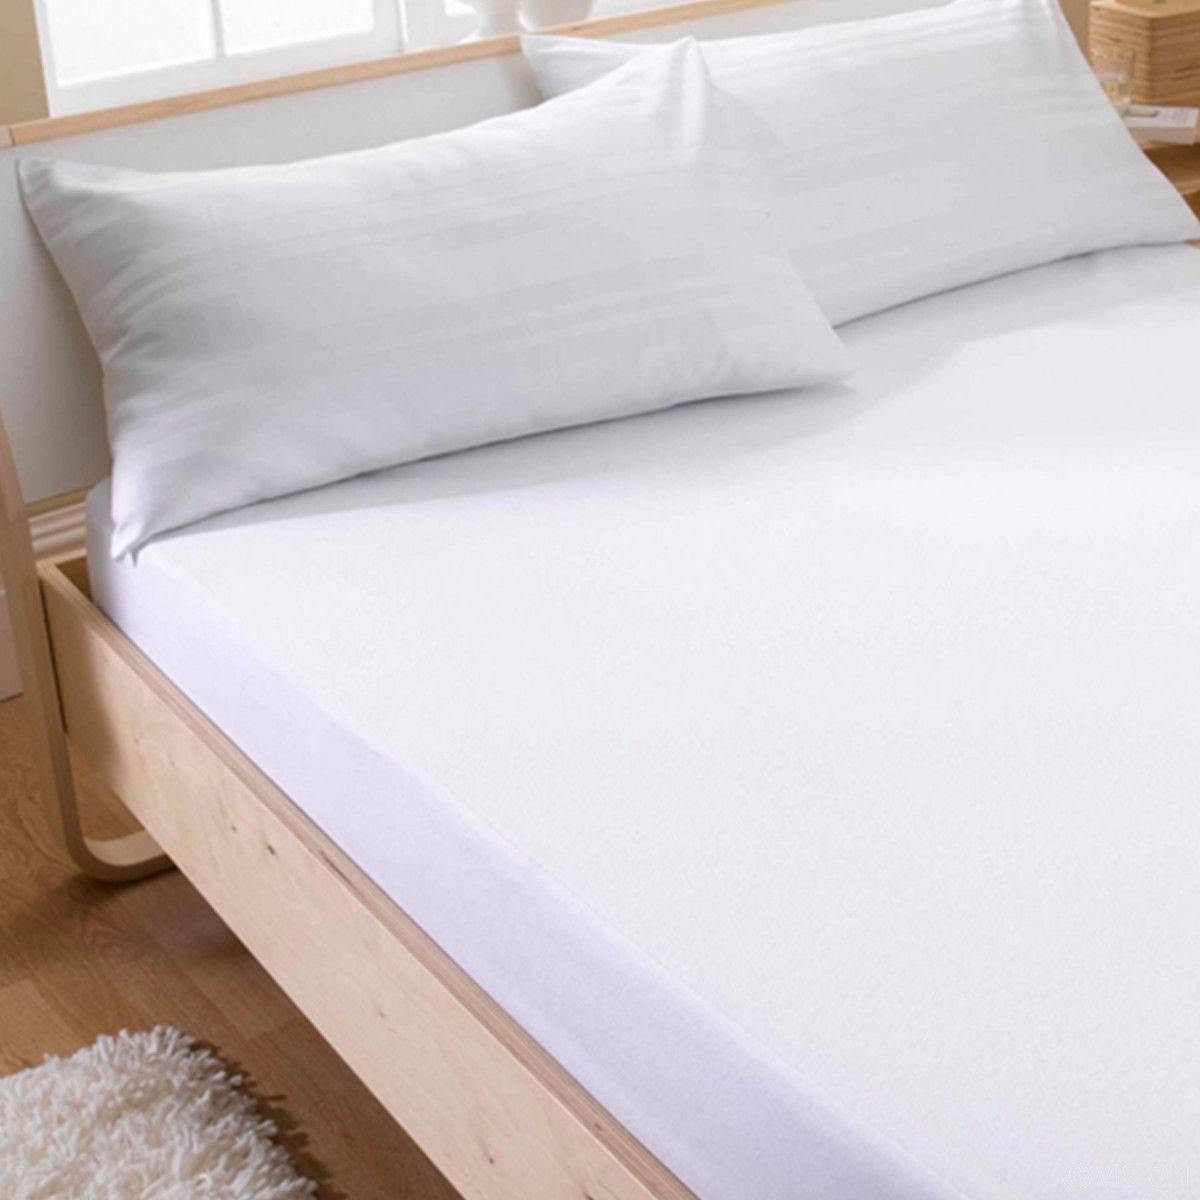 WATERPROOF TERRY TOWEL OR QUILTED Mattress Protector Sheet Bed Cover All Sizes